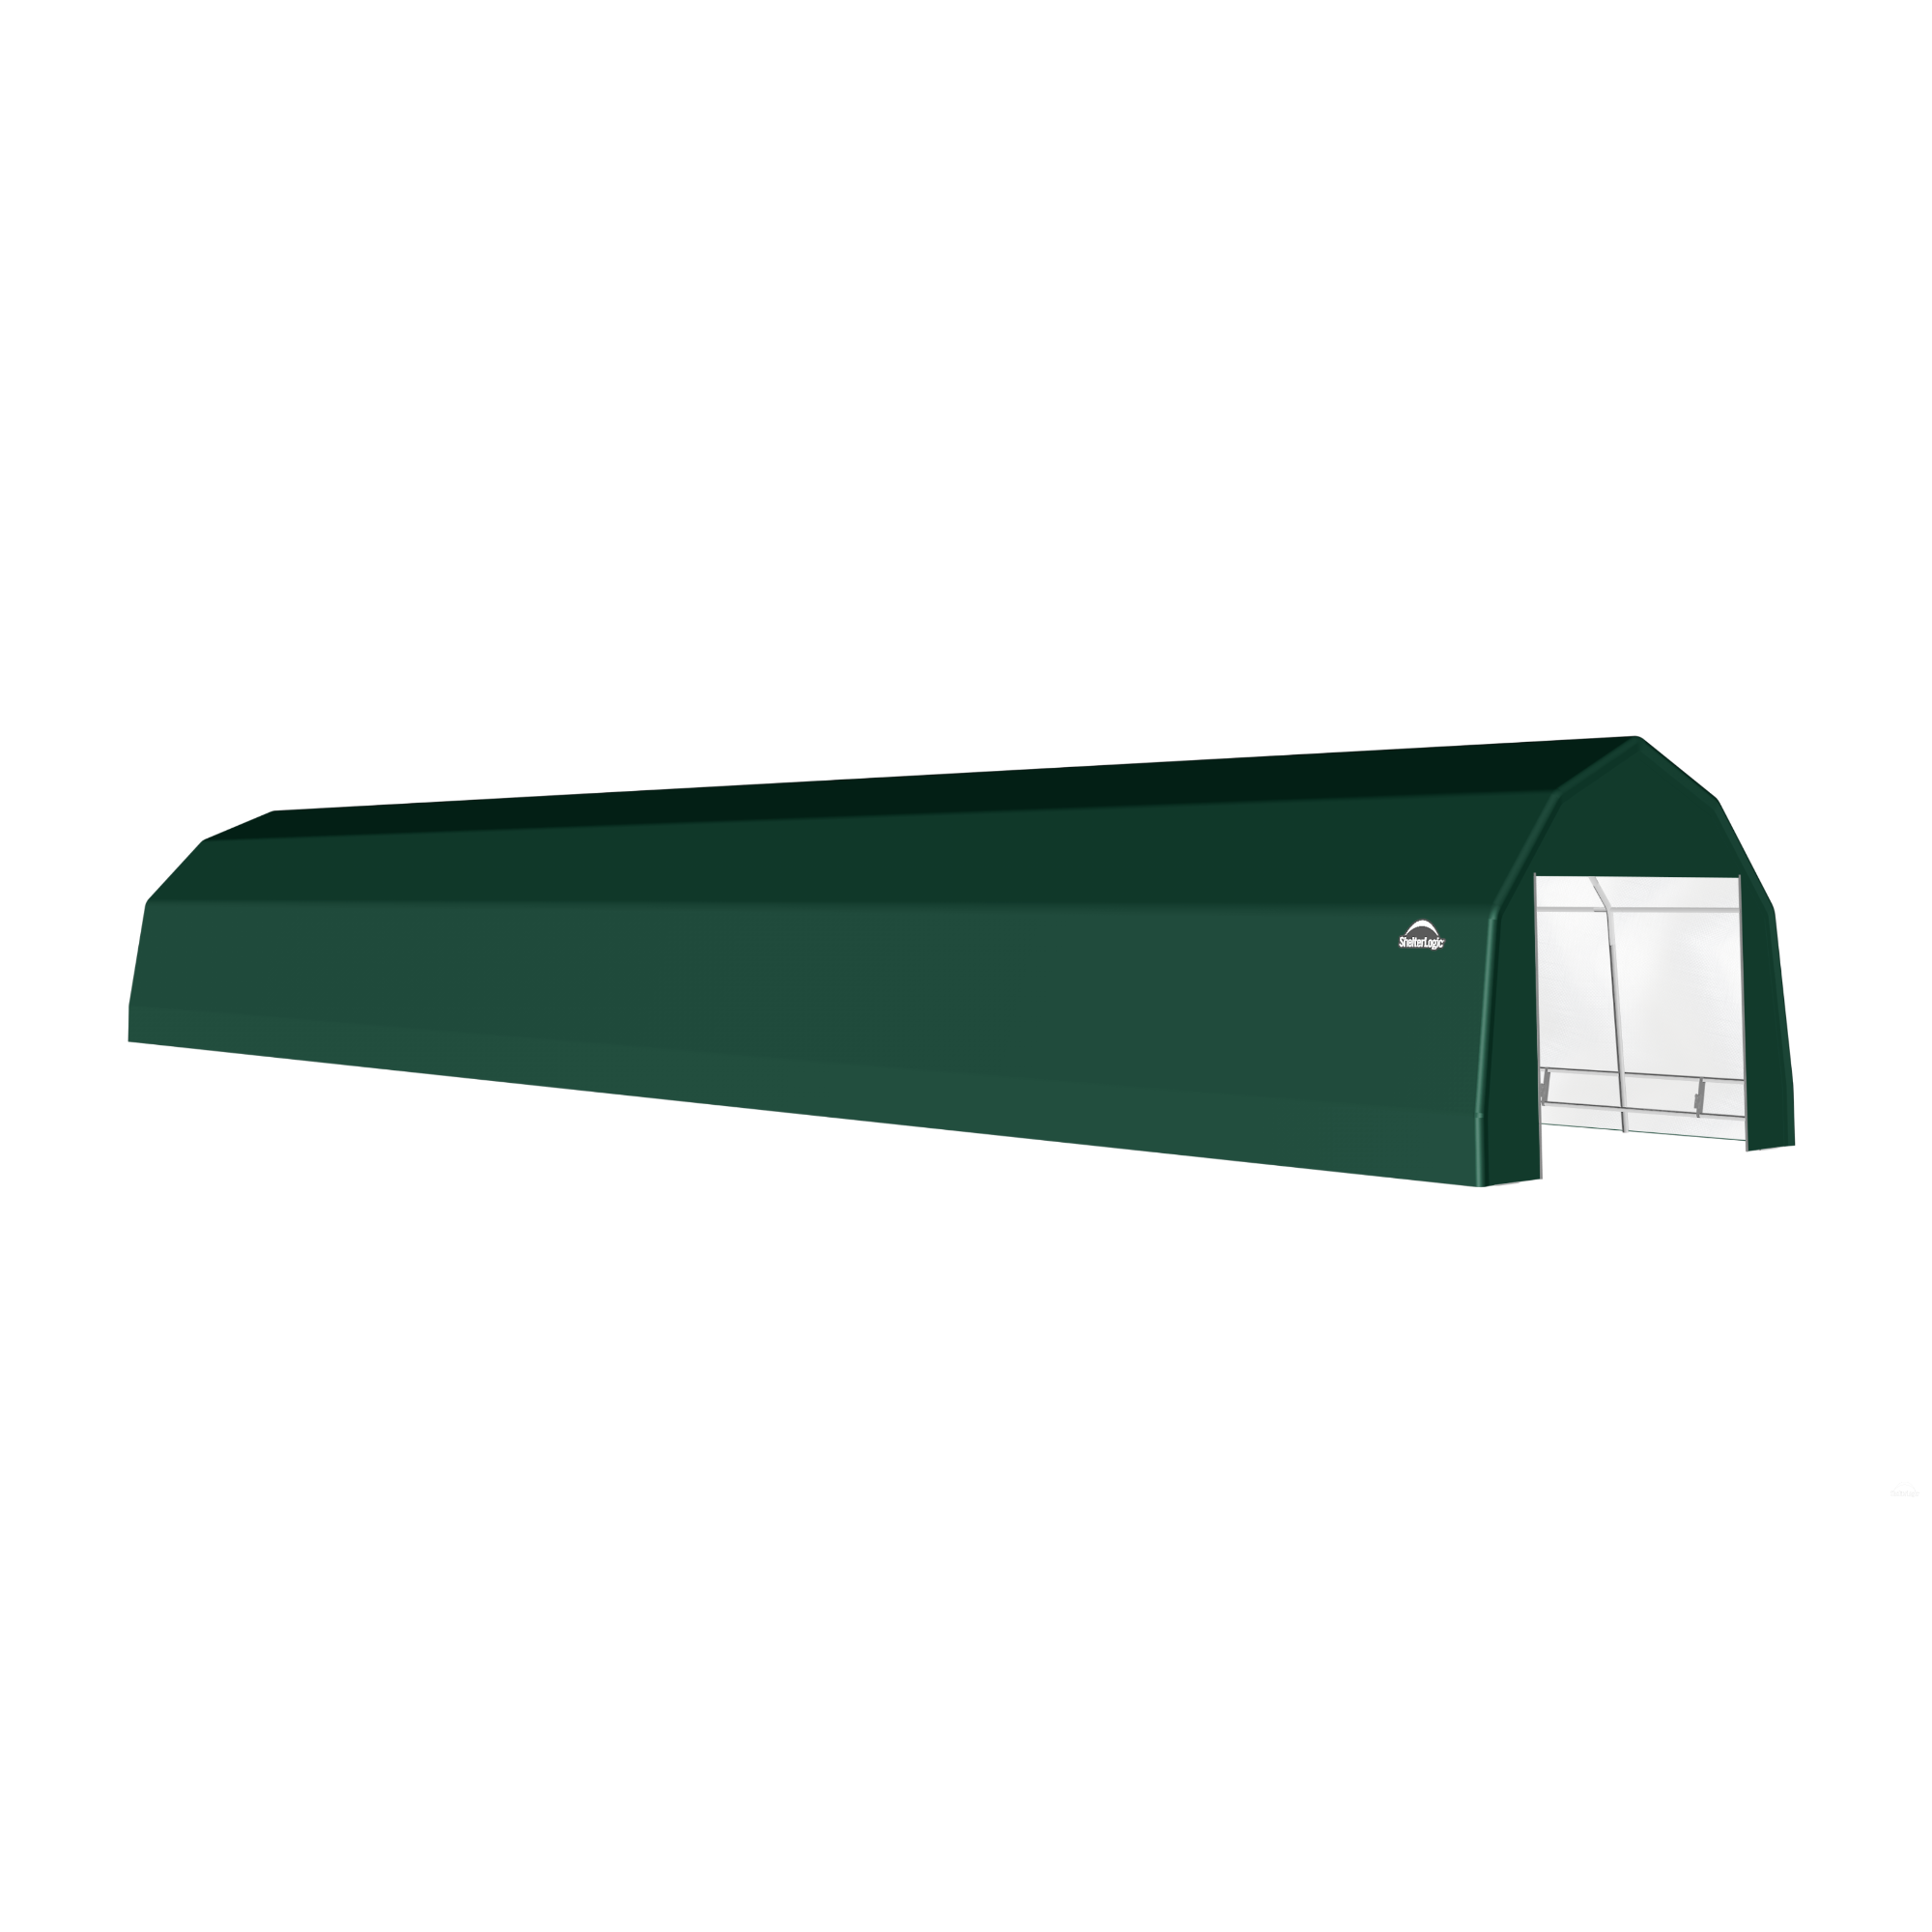 SP Barn 12X56X9 Green 14 oz PE Shelter